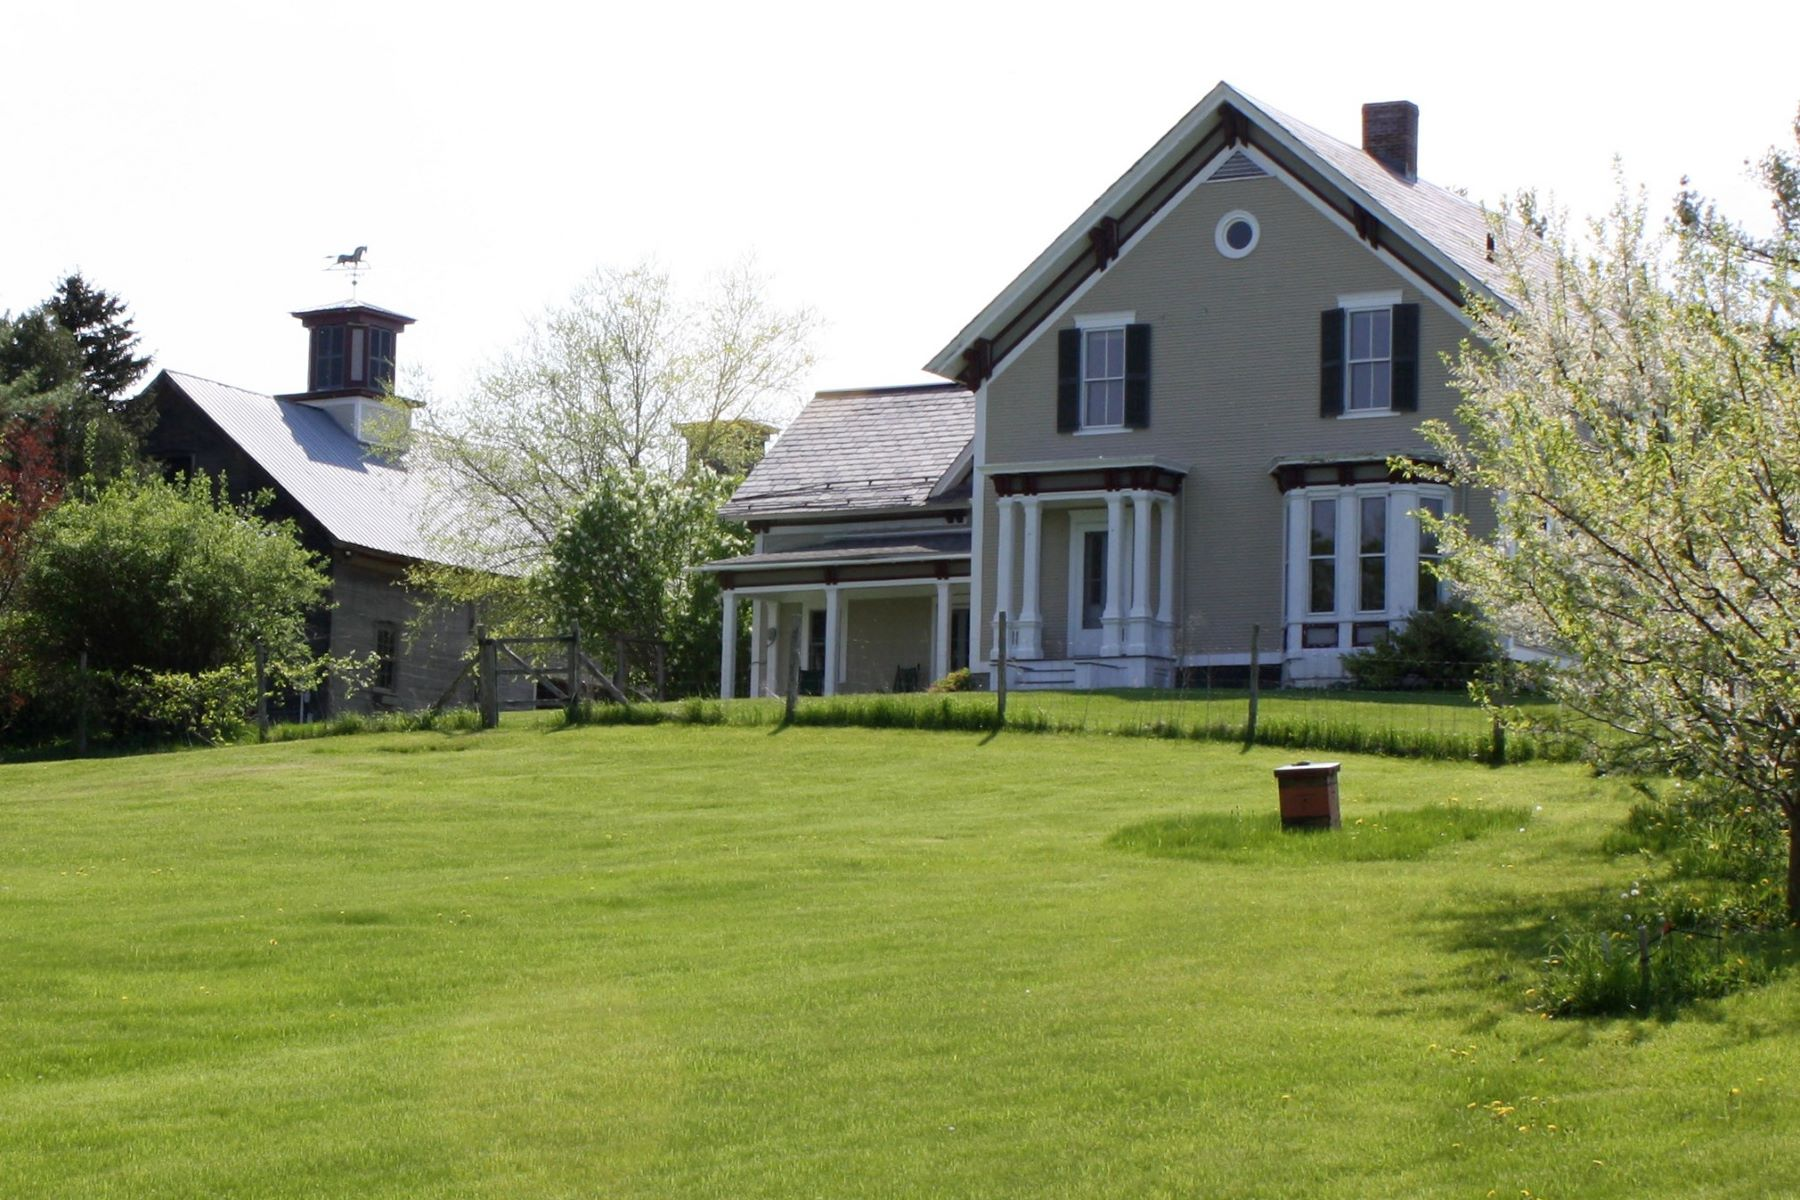 Single Family Home for Sale at 1455 Cider Mill Road, Cornwall 1455 Cider Mill Rd Cornwall, Vermont 05753 United States